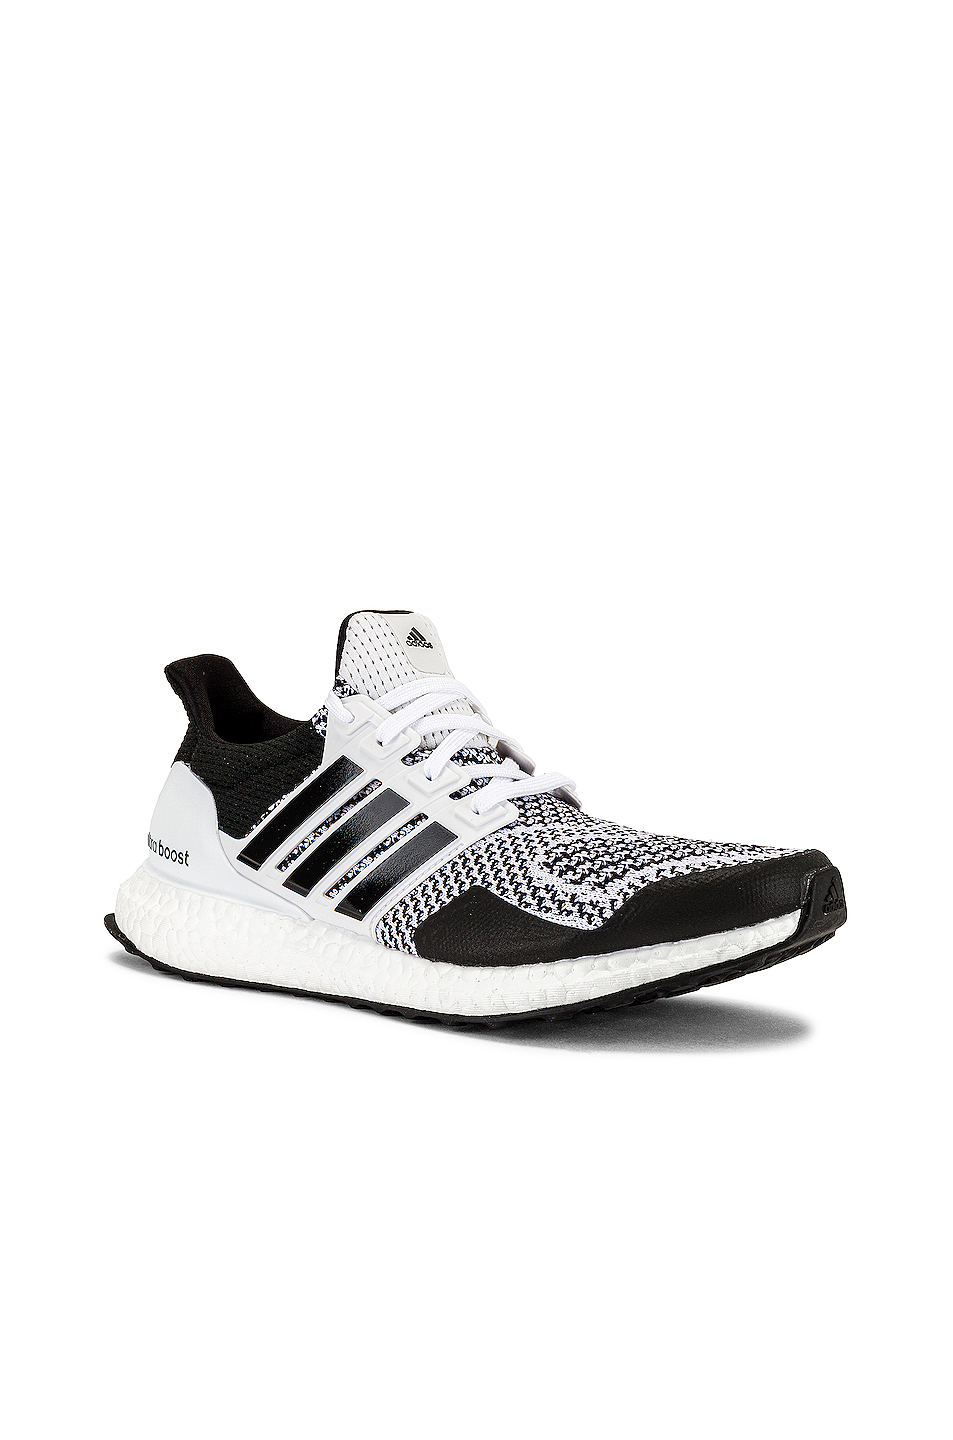 adidas Originals Ultraboost DNA 1.0